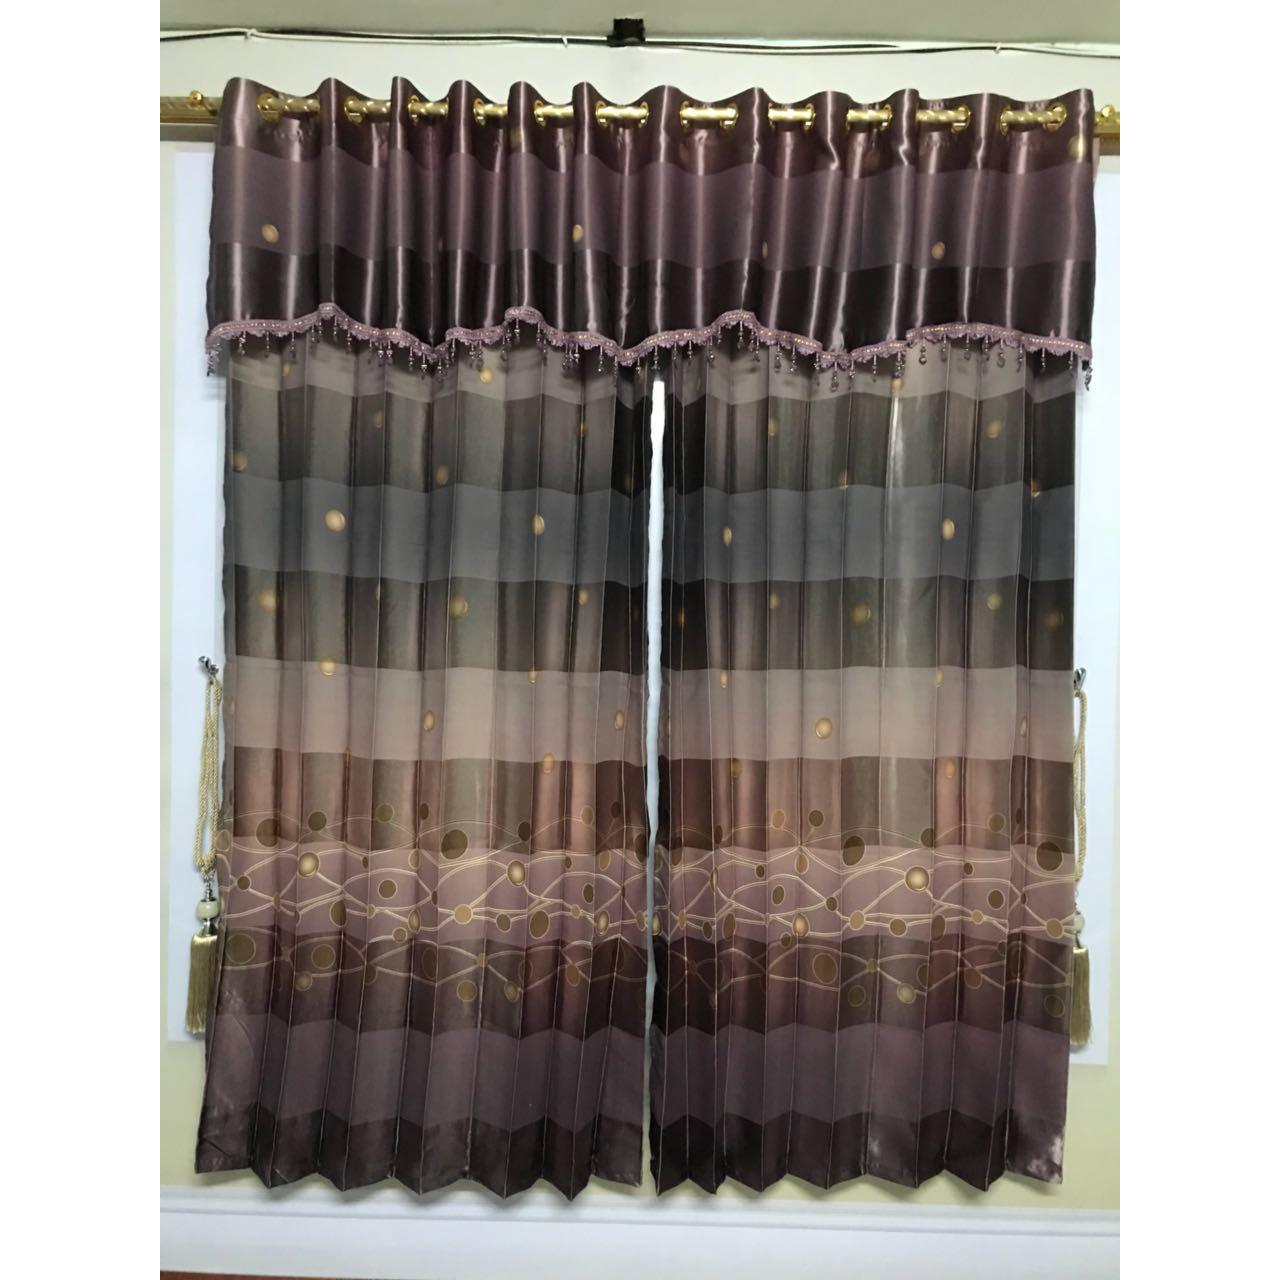 ... Gorden Import Korden Blackout Print Smokring Type Nagita 230 Ungu - 3